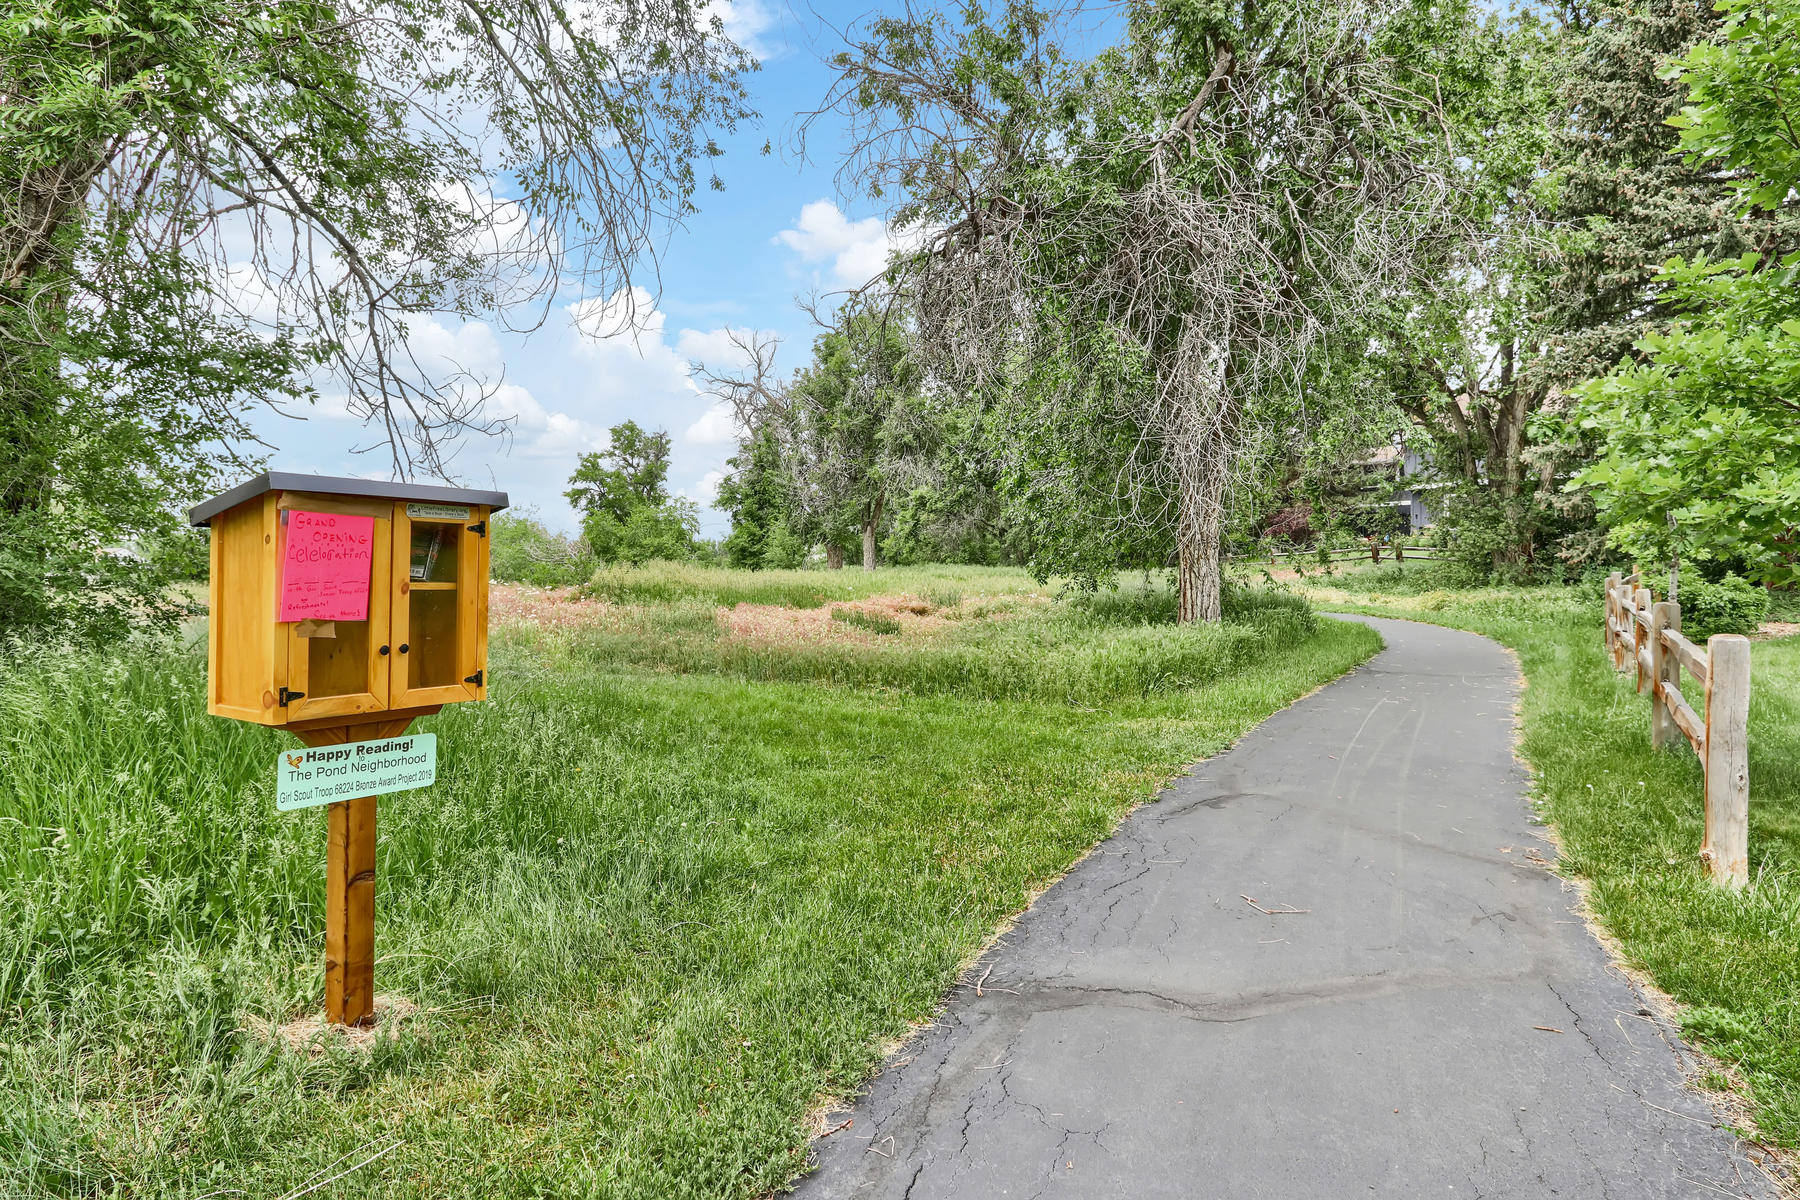 8490 Independence Way Arvada-039-002-Neighborhood-MLS_Size.jpg